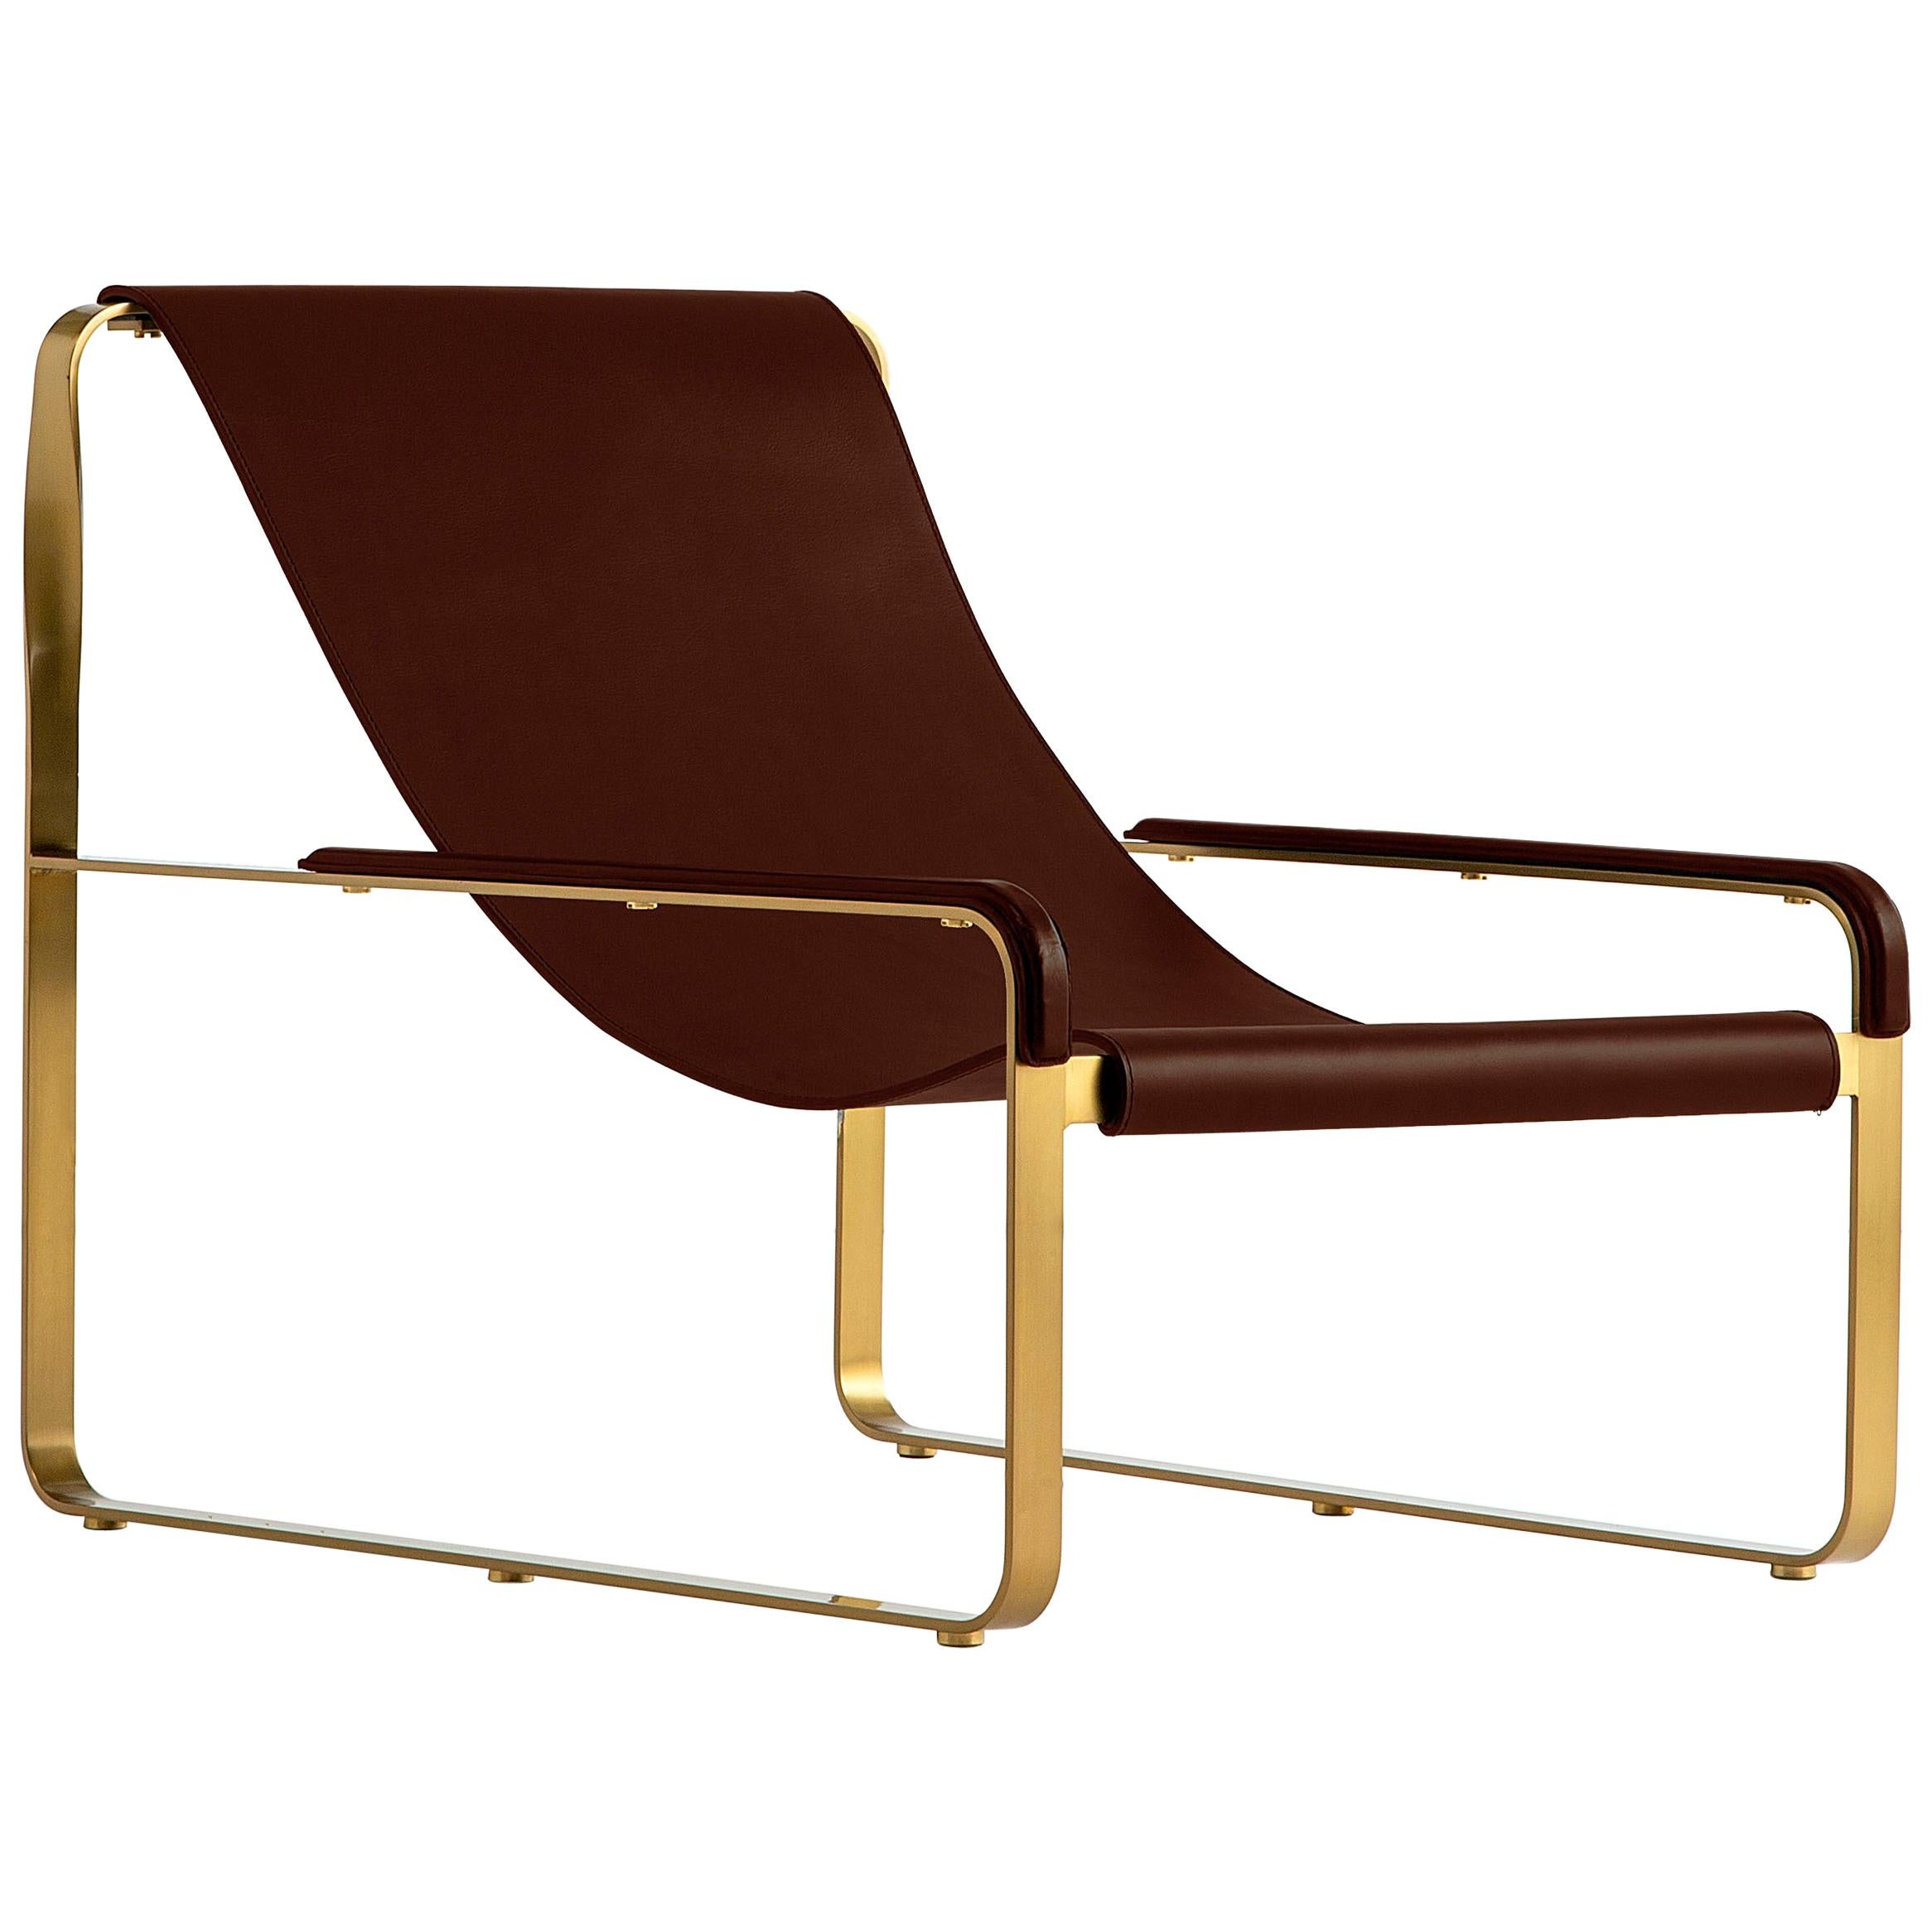 Contemporary Chaise Lounge, Brass Steel and Dark Brown Leather, Modern Style